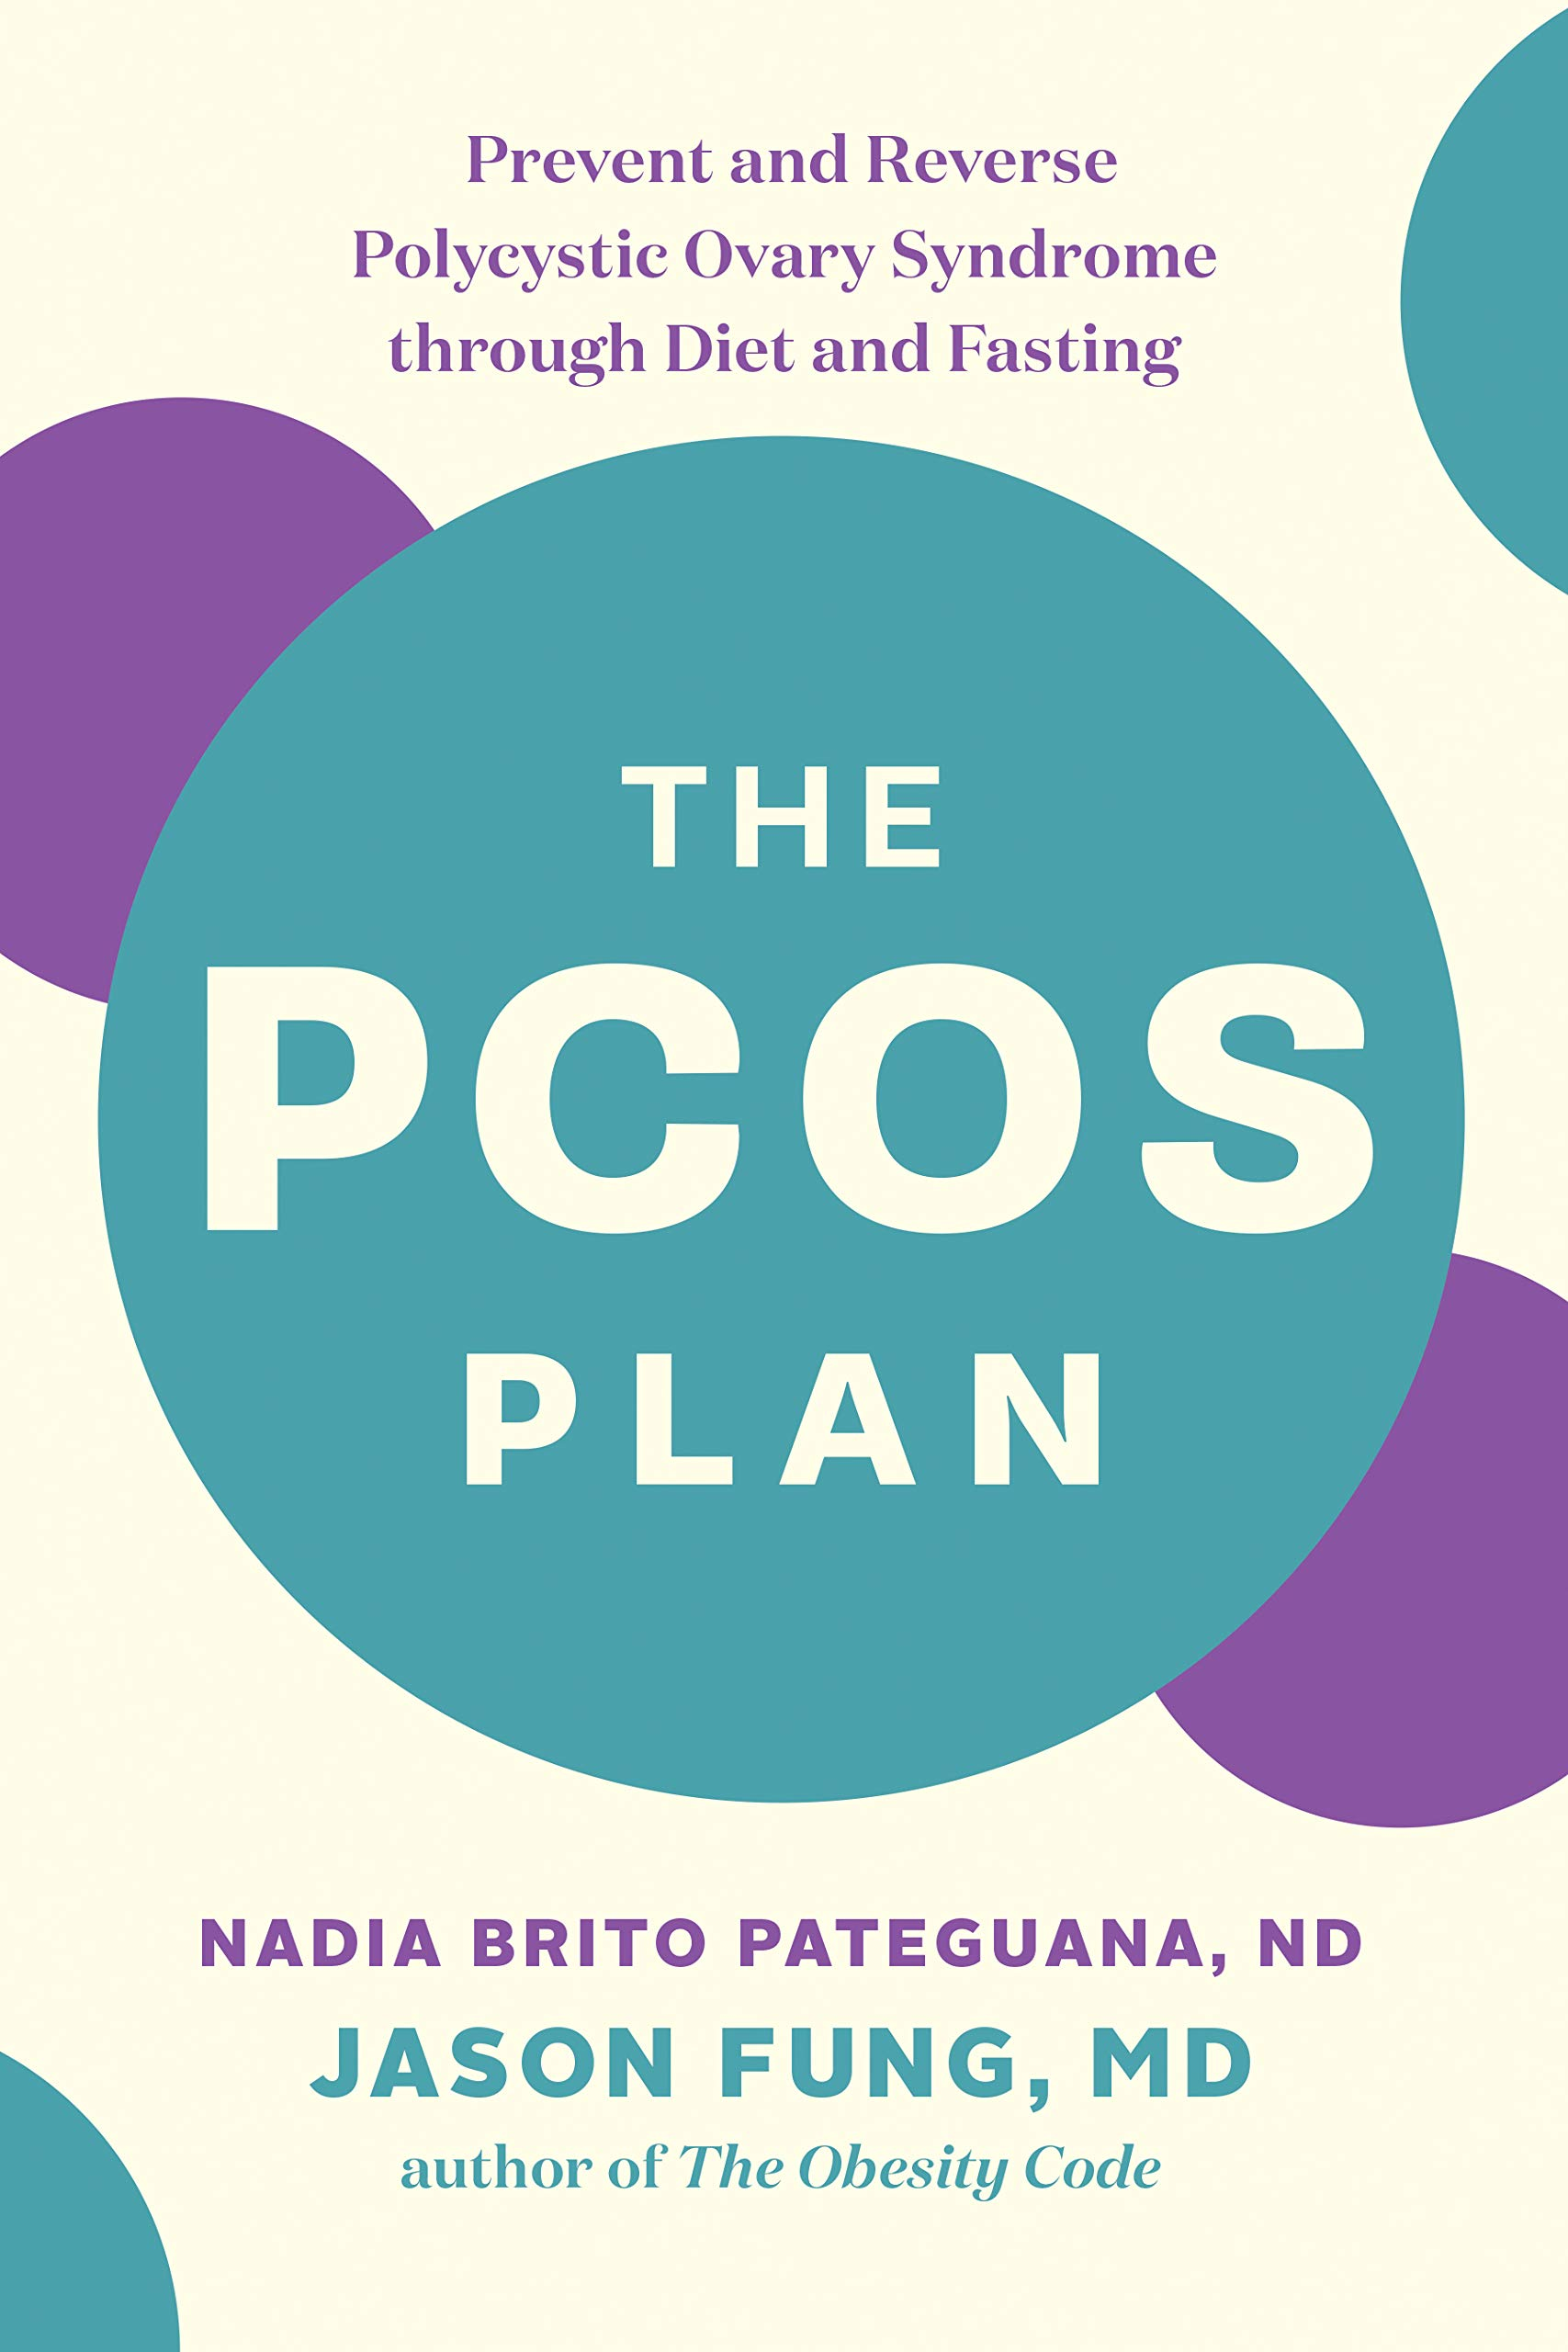 can pcos be reversed with sugar free diet